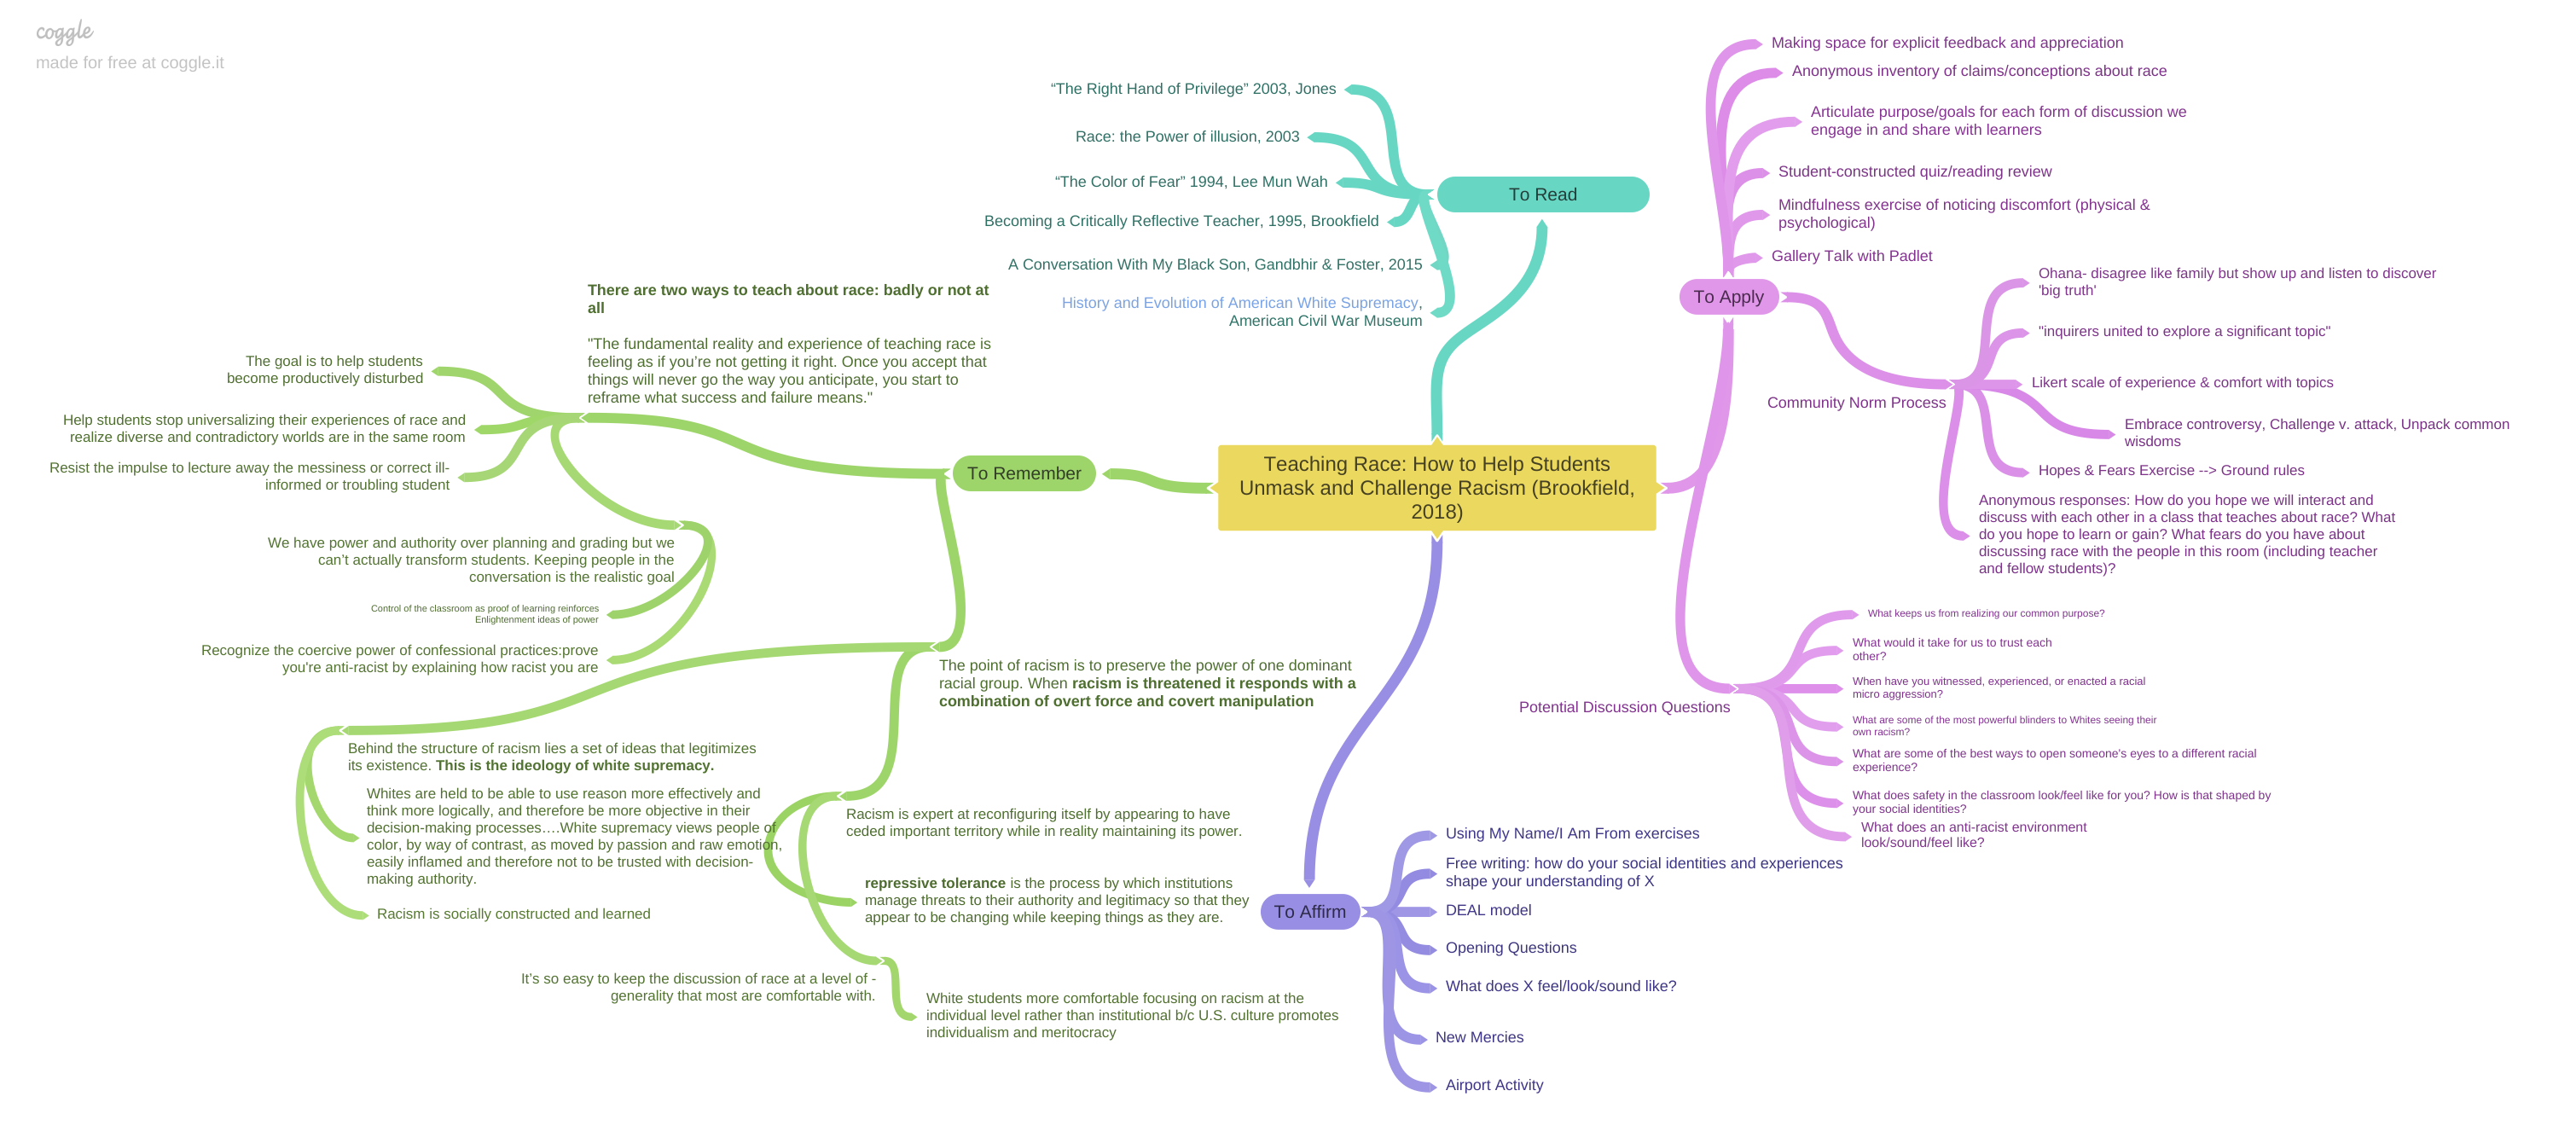 Image of mind-map reading notes